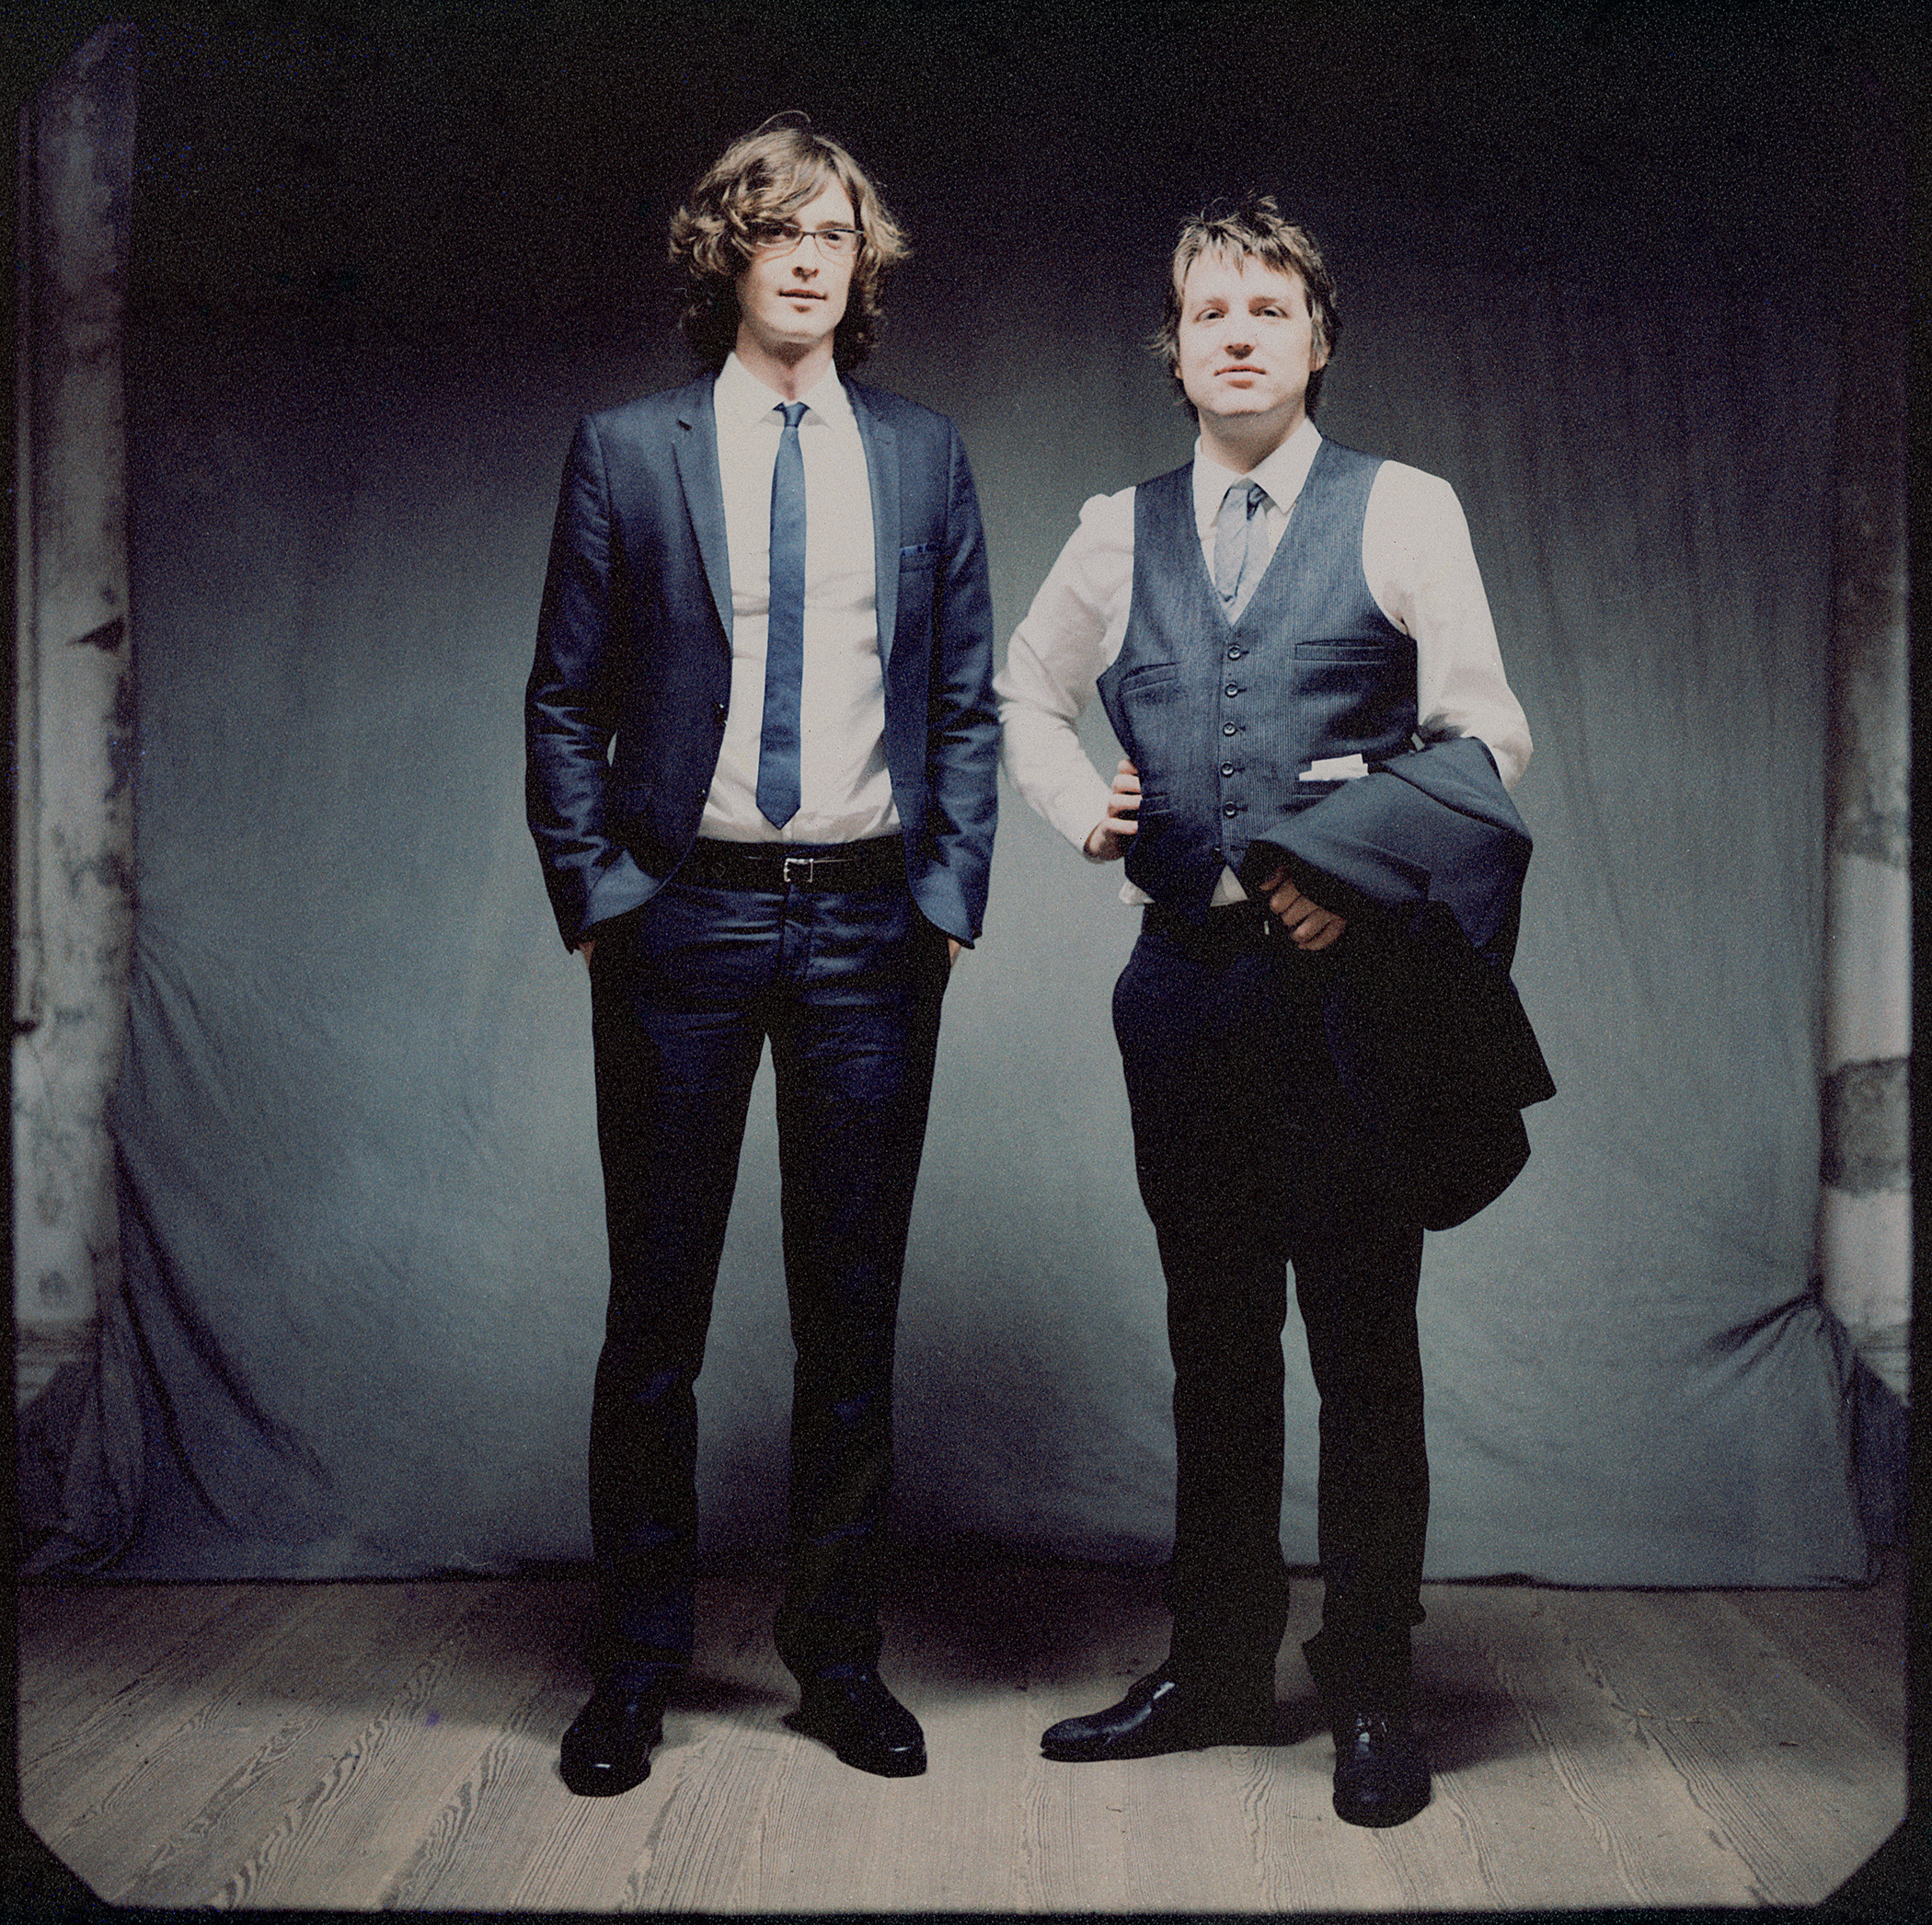 The Milk Carton Kids - Official Press Photo